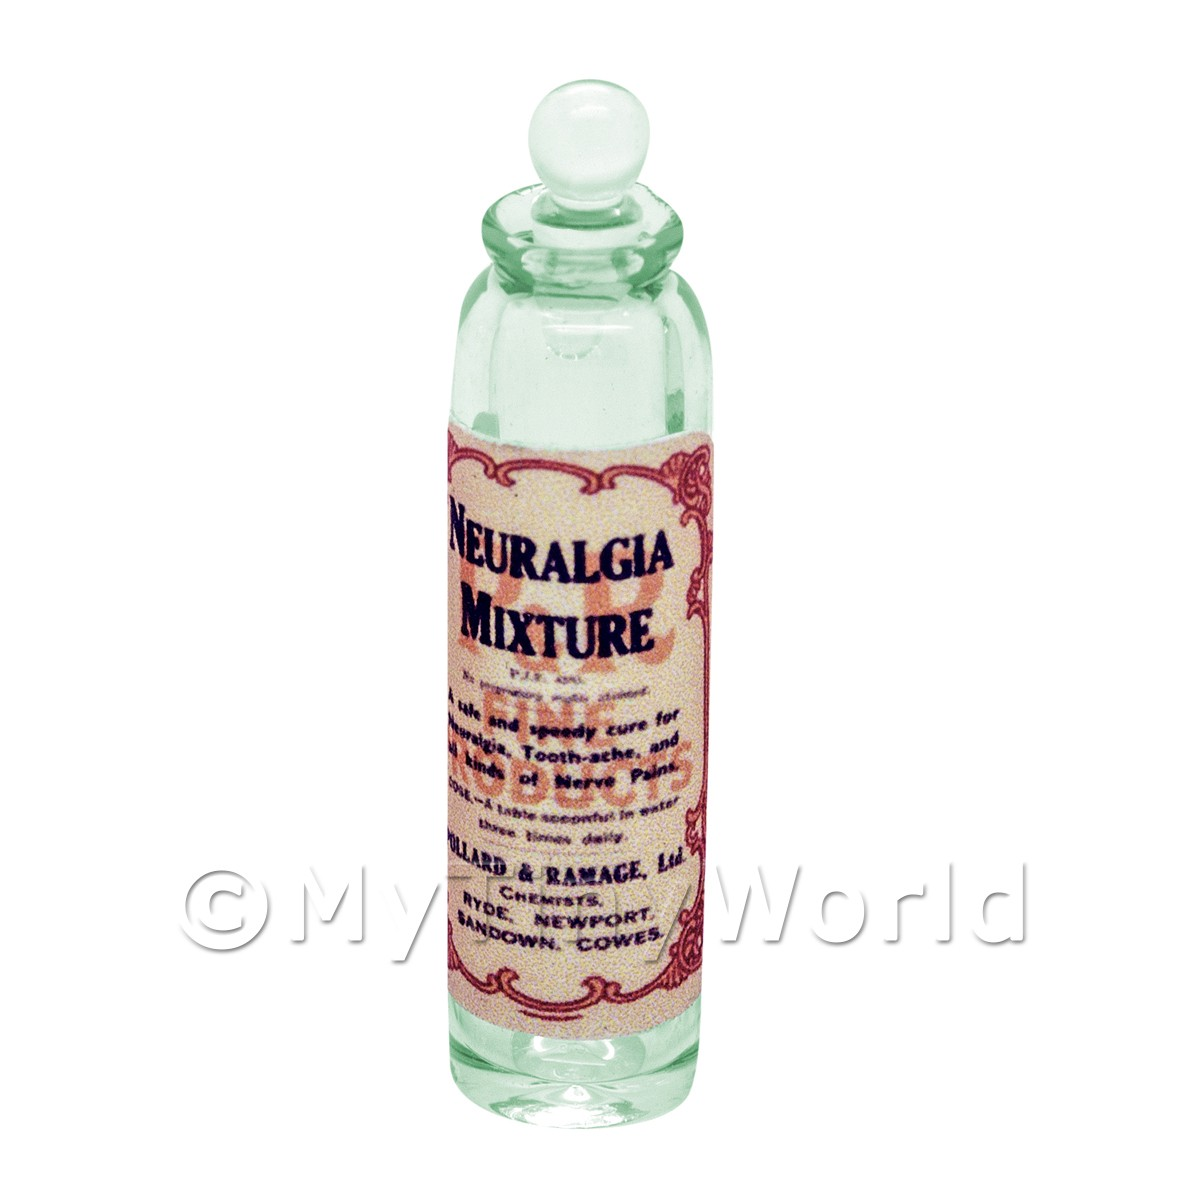 Miniature Neuralgia Mixture Green Glass Apothecary Bottle